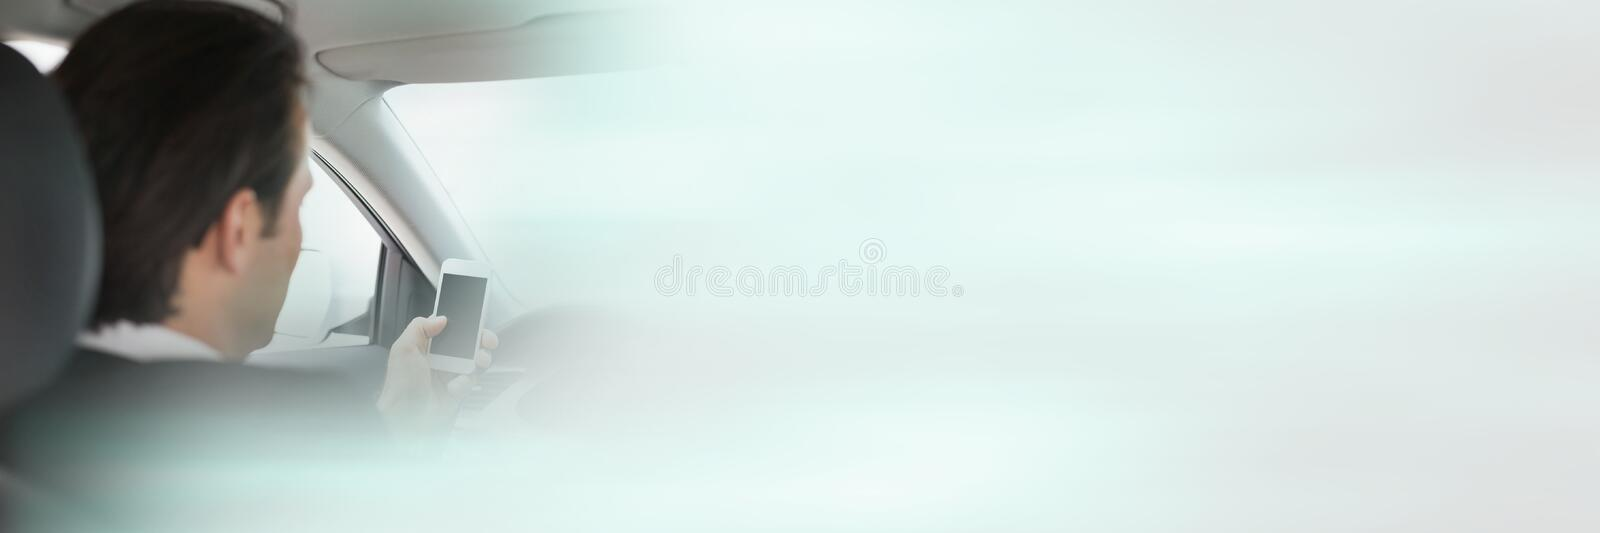 Man in car with transition effect. Digital composite of Man in car with transition effect royalty free stock image